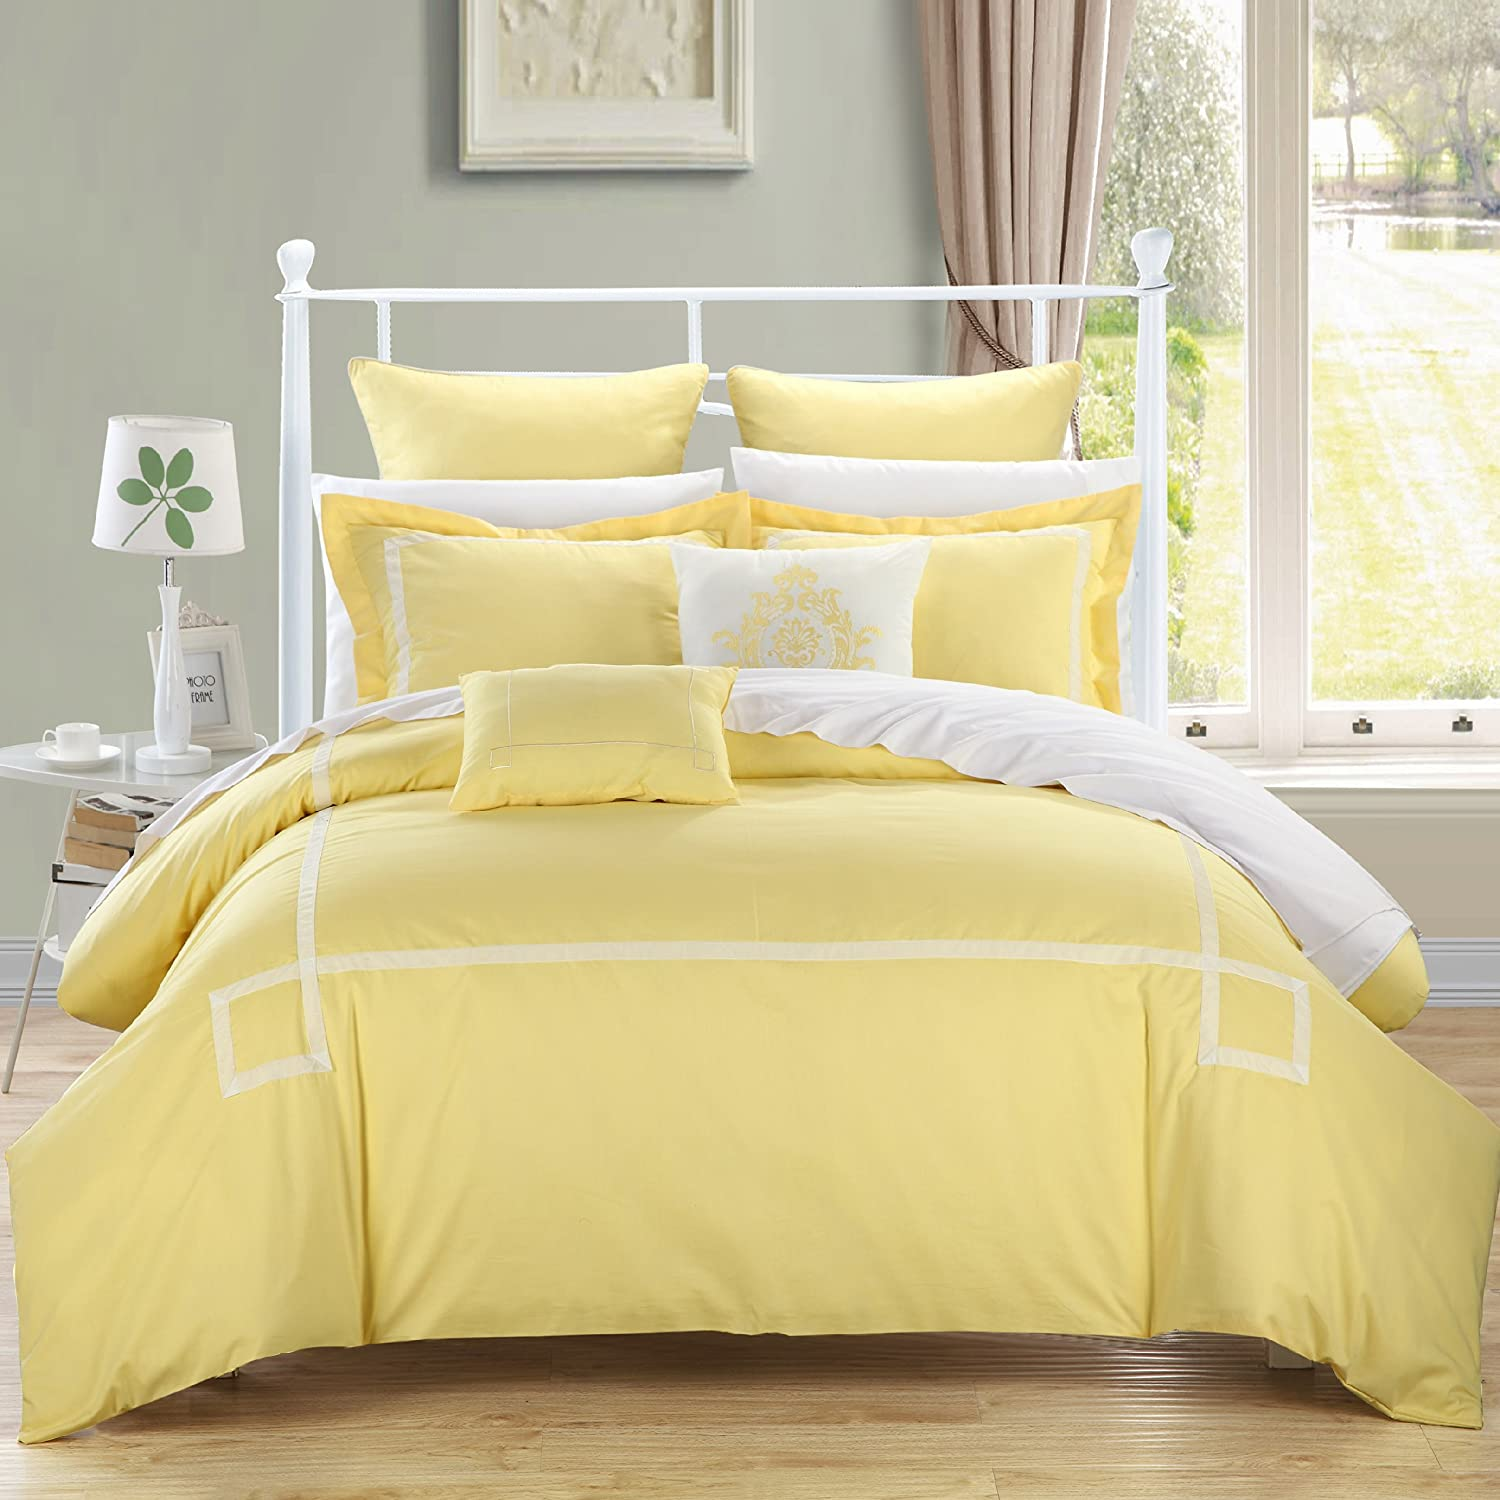 6 Yellow Bedding Sets Youll Love